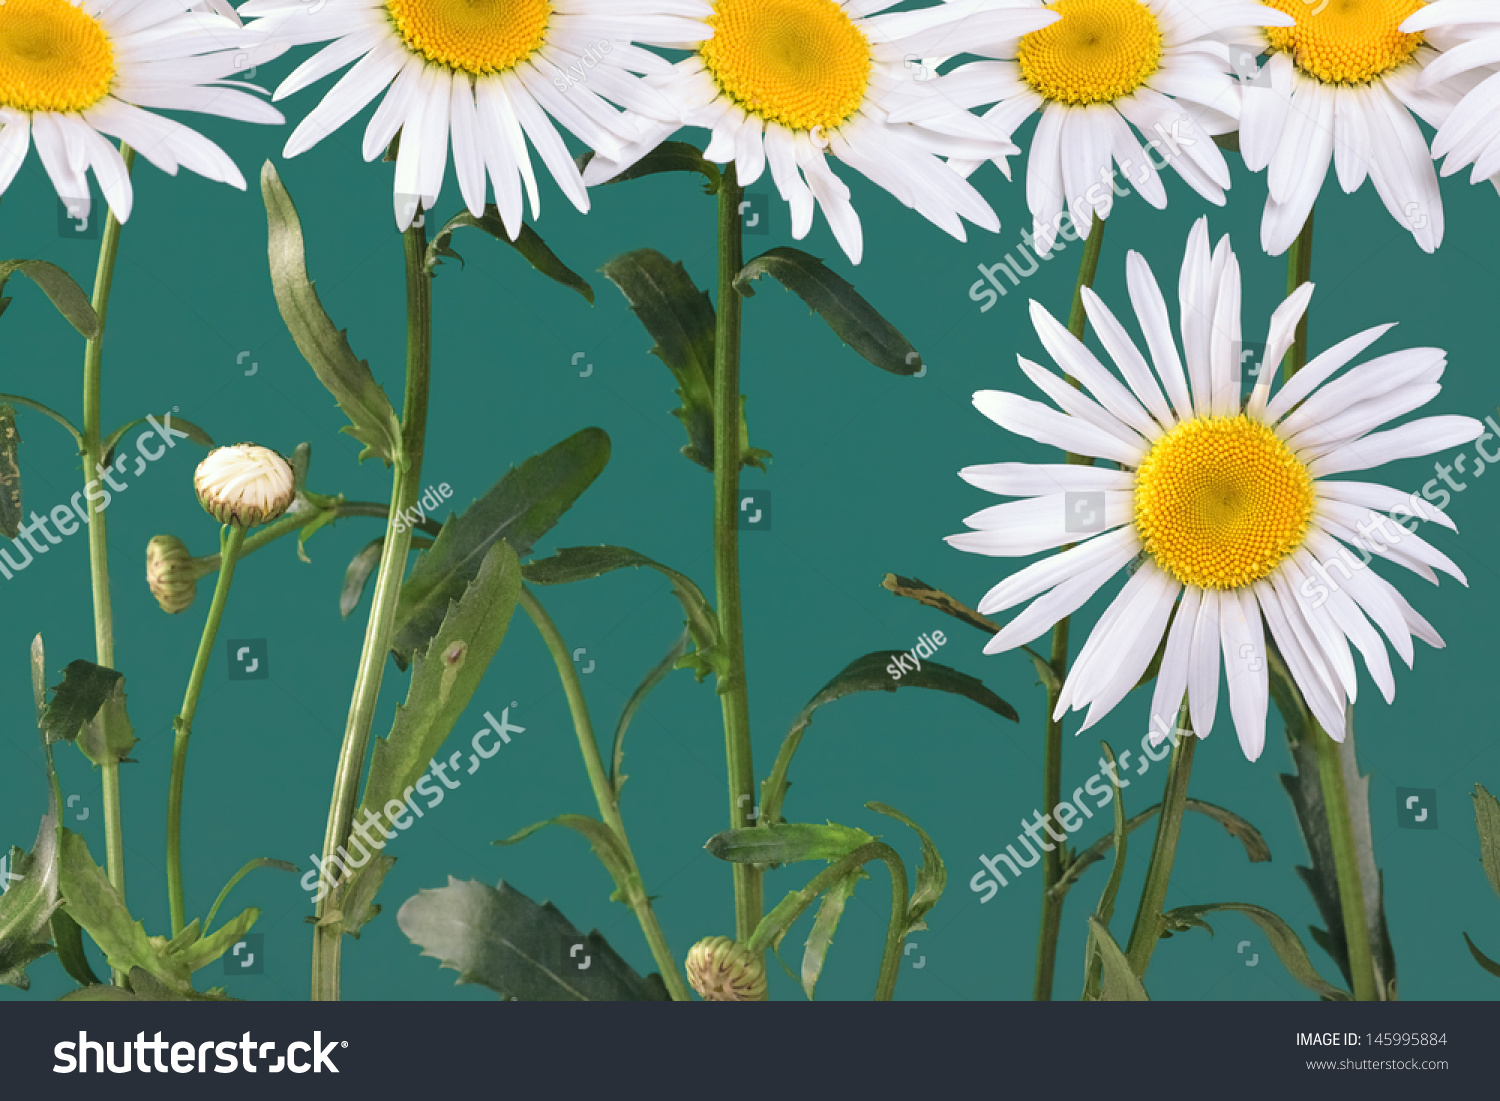 Daisylike flower species flowering plant aster stock photo 145995884 the daisy like flower is a species of flowering plant in the aster family known izmirmasajfo